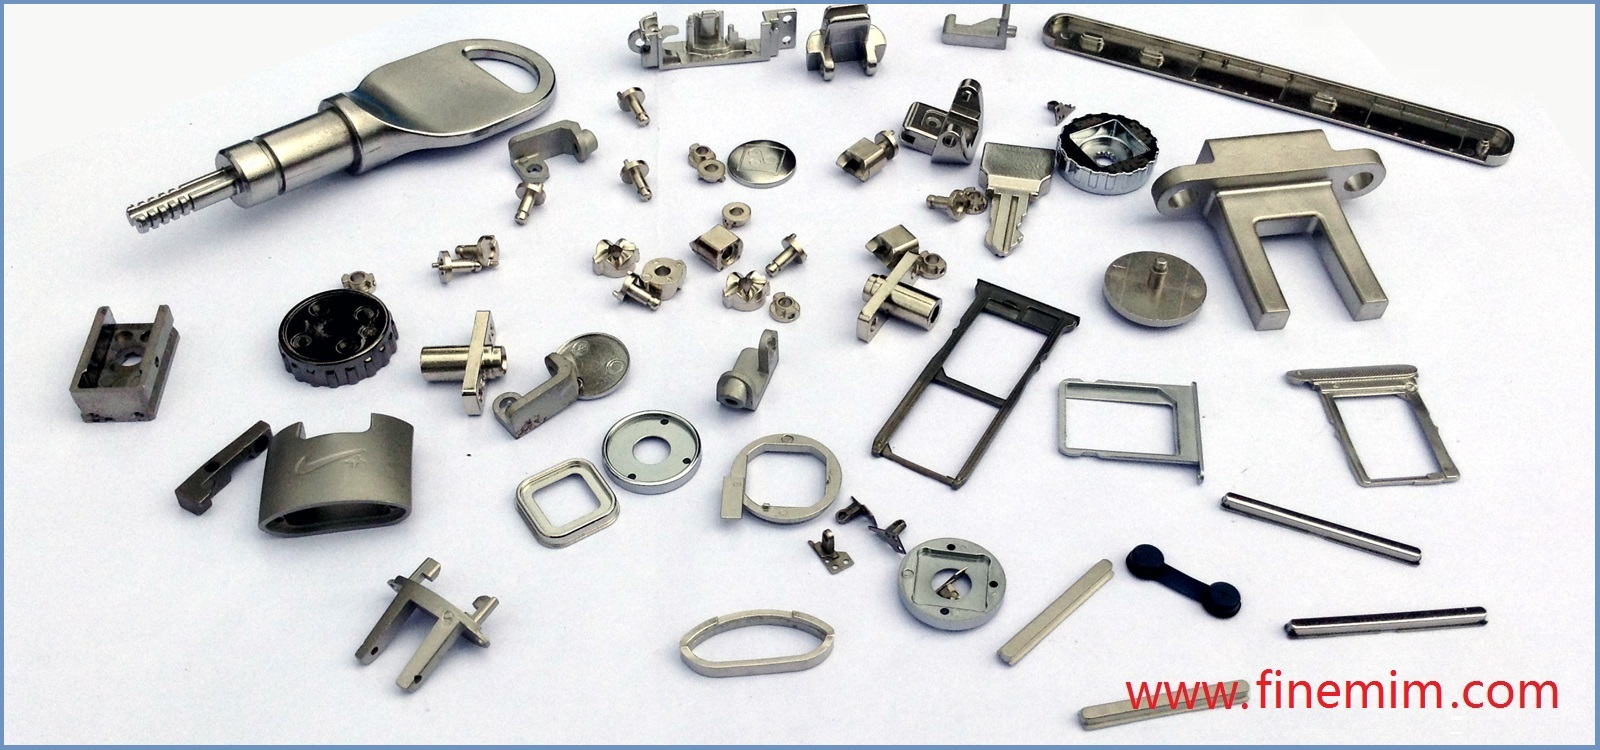 Metal Injection Molding | MIM Supplier